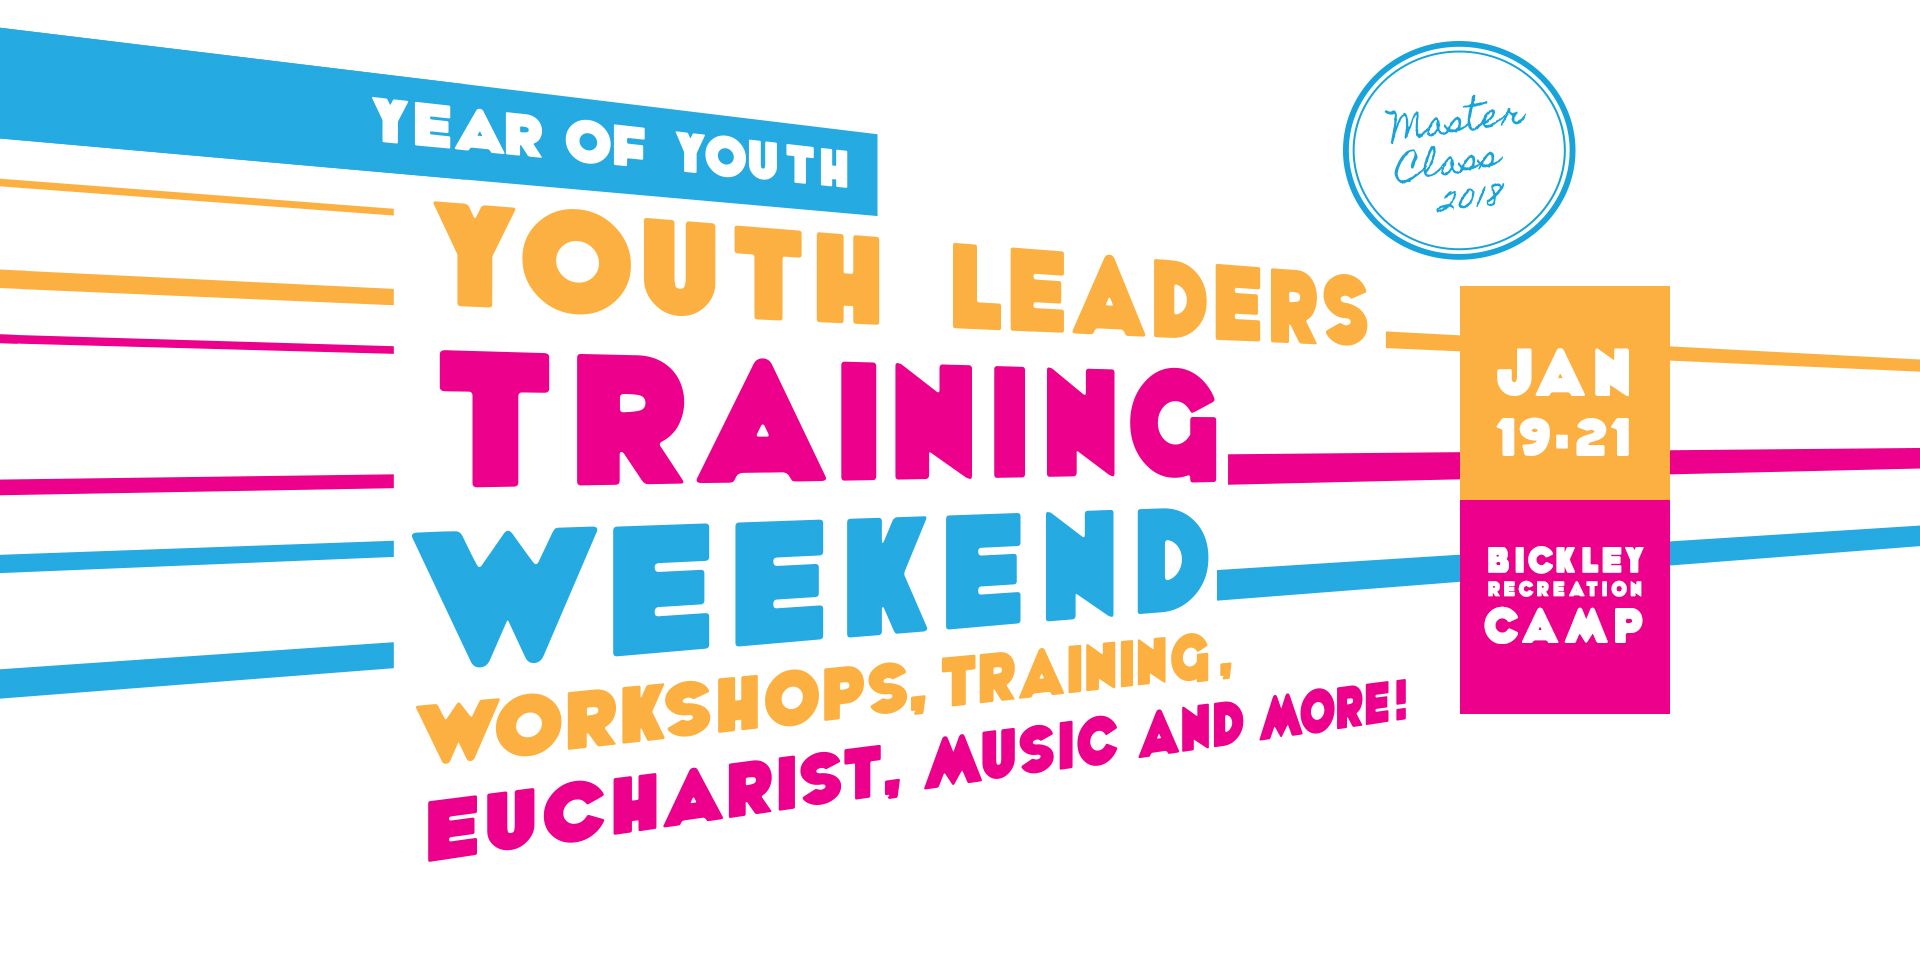 Masterclass 2018 - Youth Leaders Training